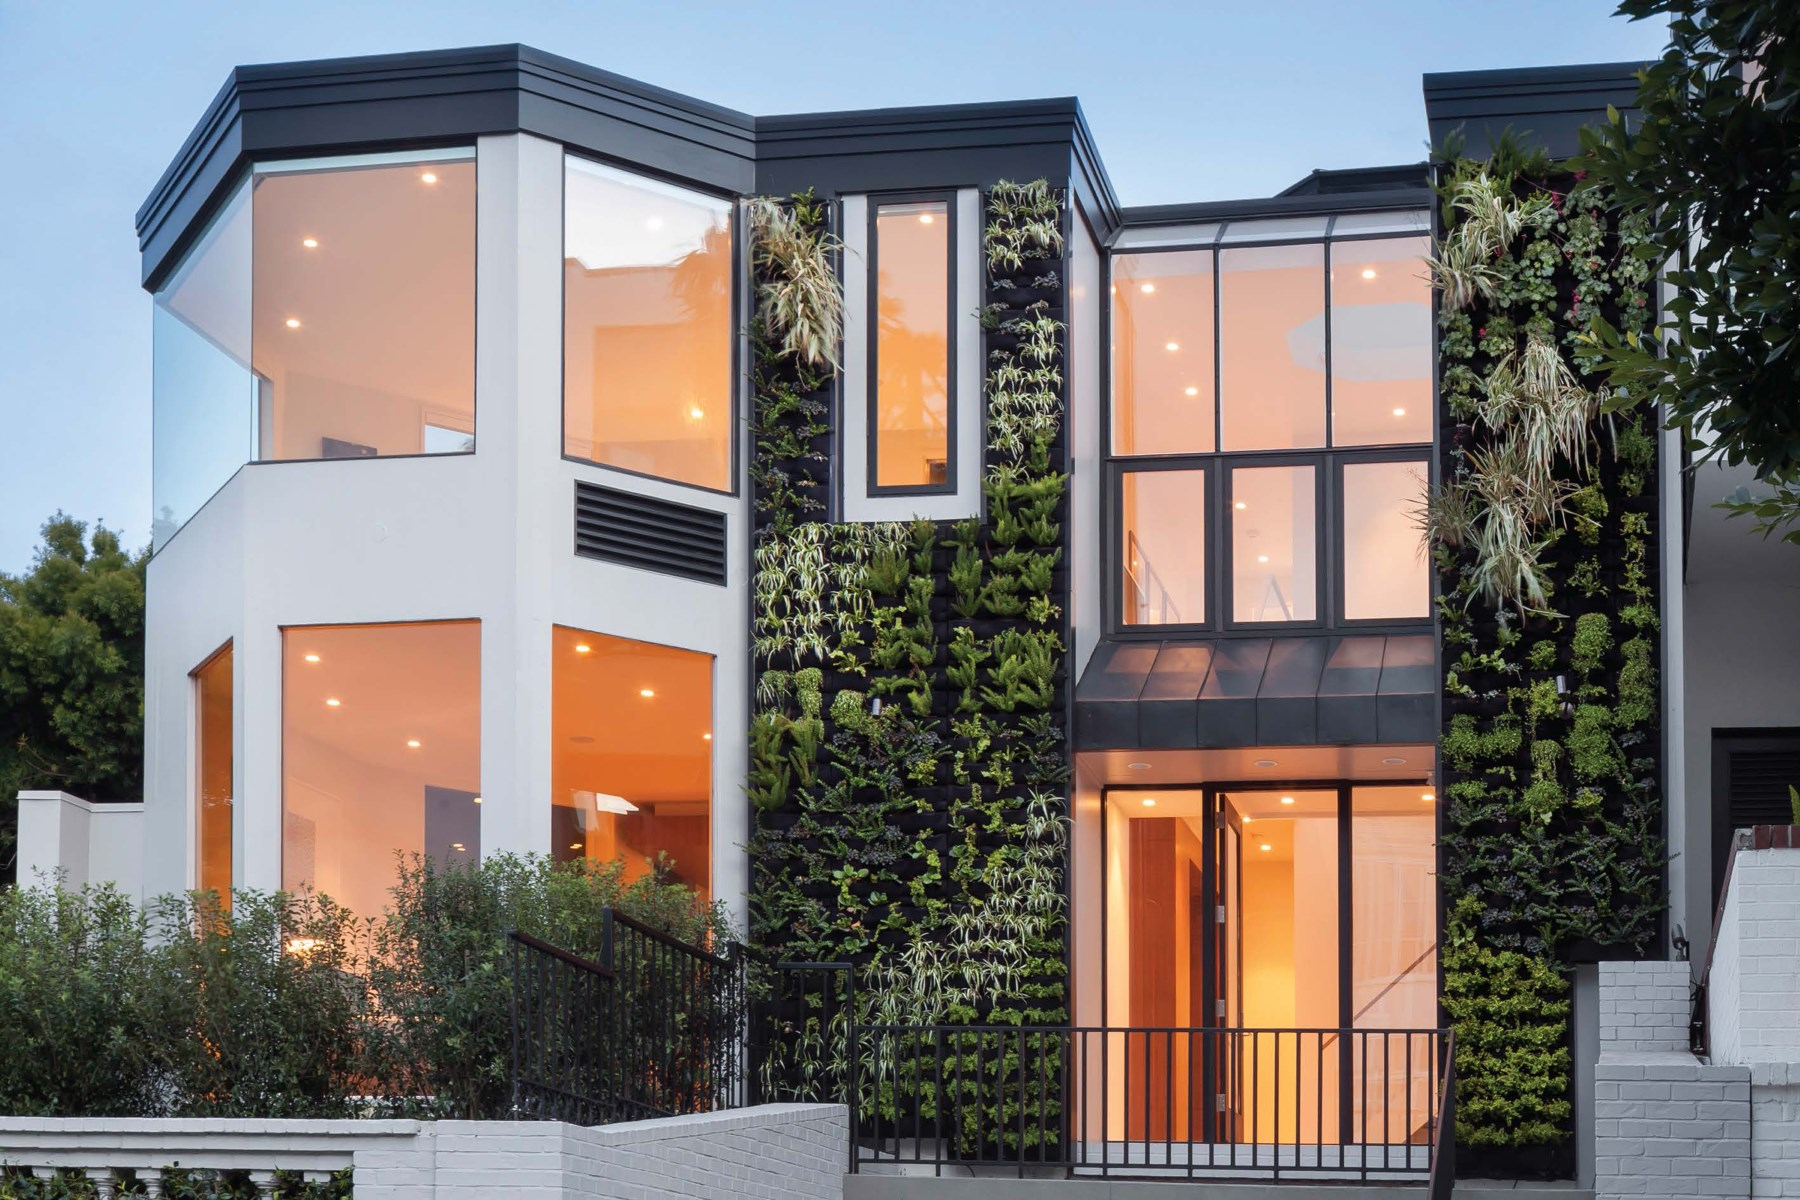 Single Family Home for Sale at Architecture, Nature, and Design 2635 Broadway St San Francisco, California 94115 United States